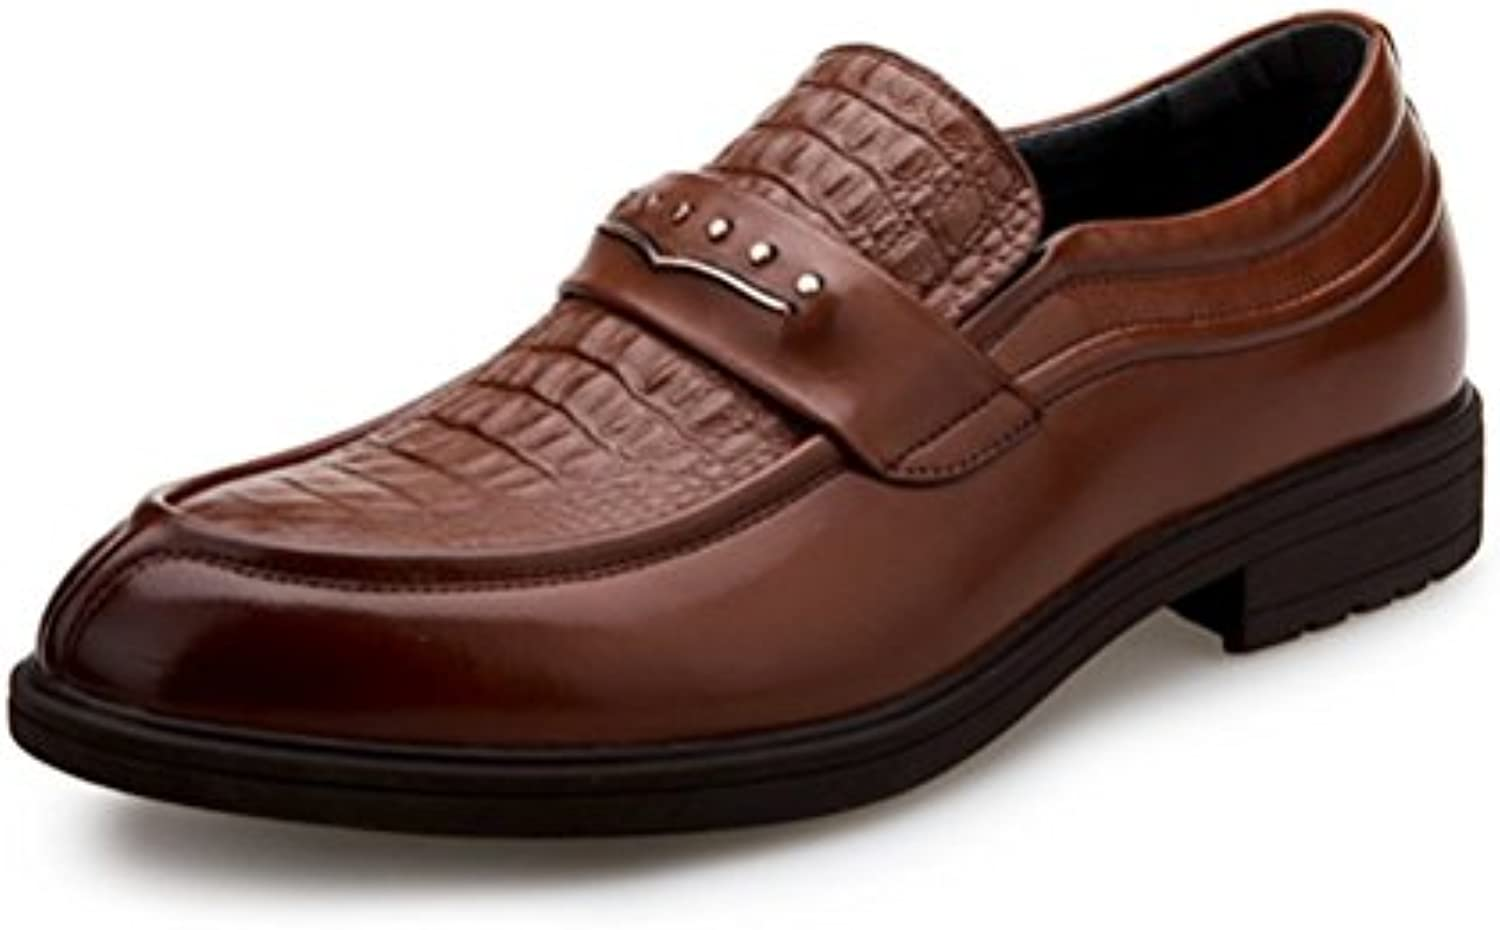 LYZGF Männer Jugend Business Casual Fashion Atmungs Gentleman Lederschuhe